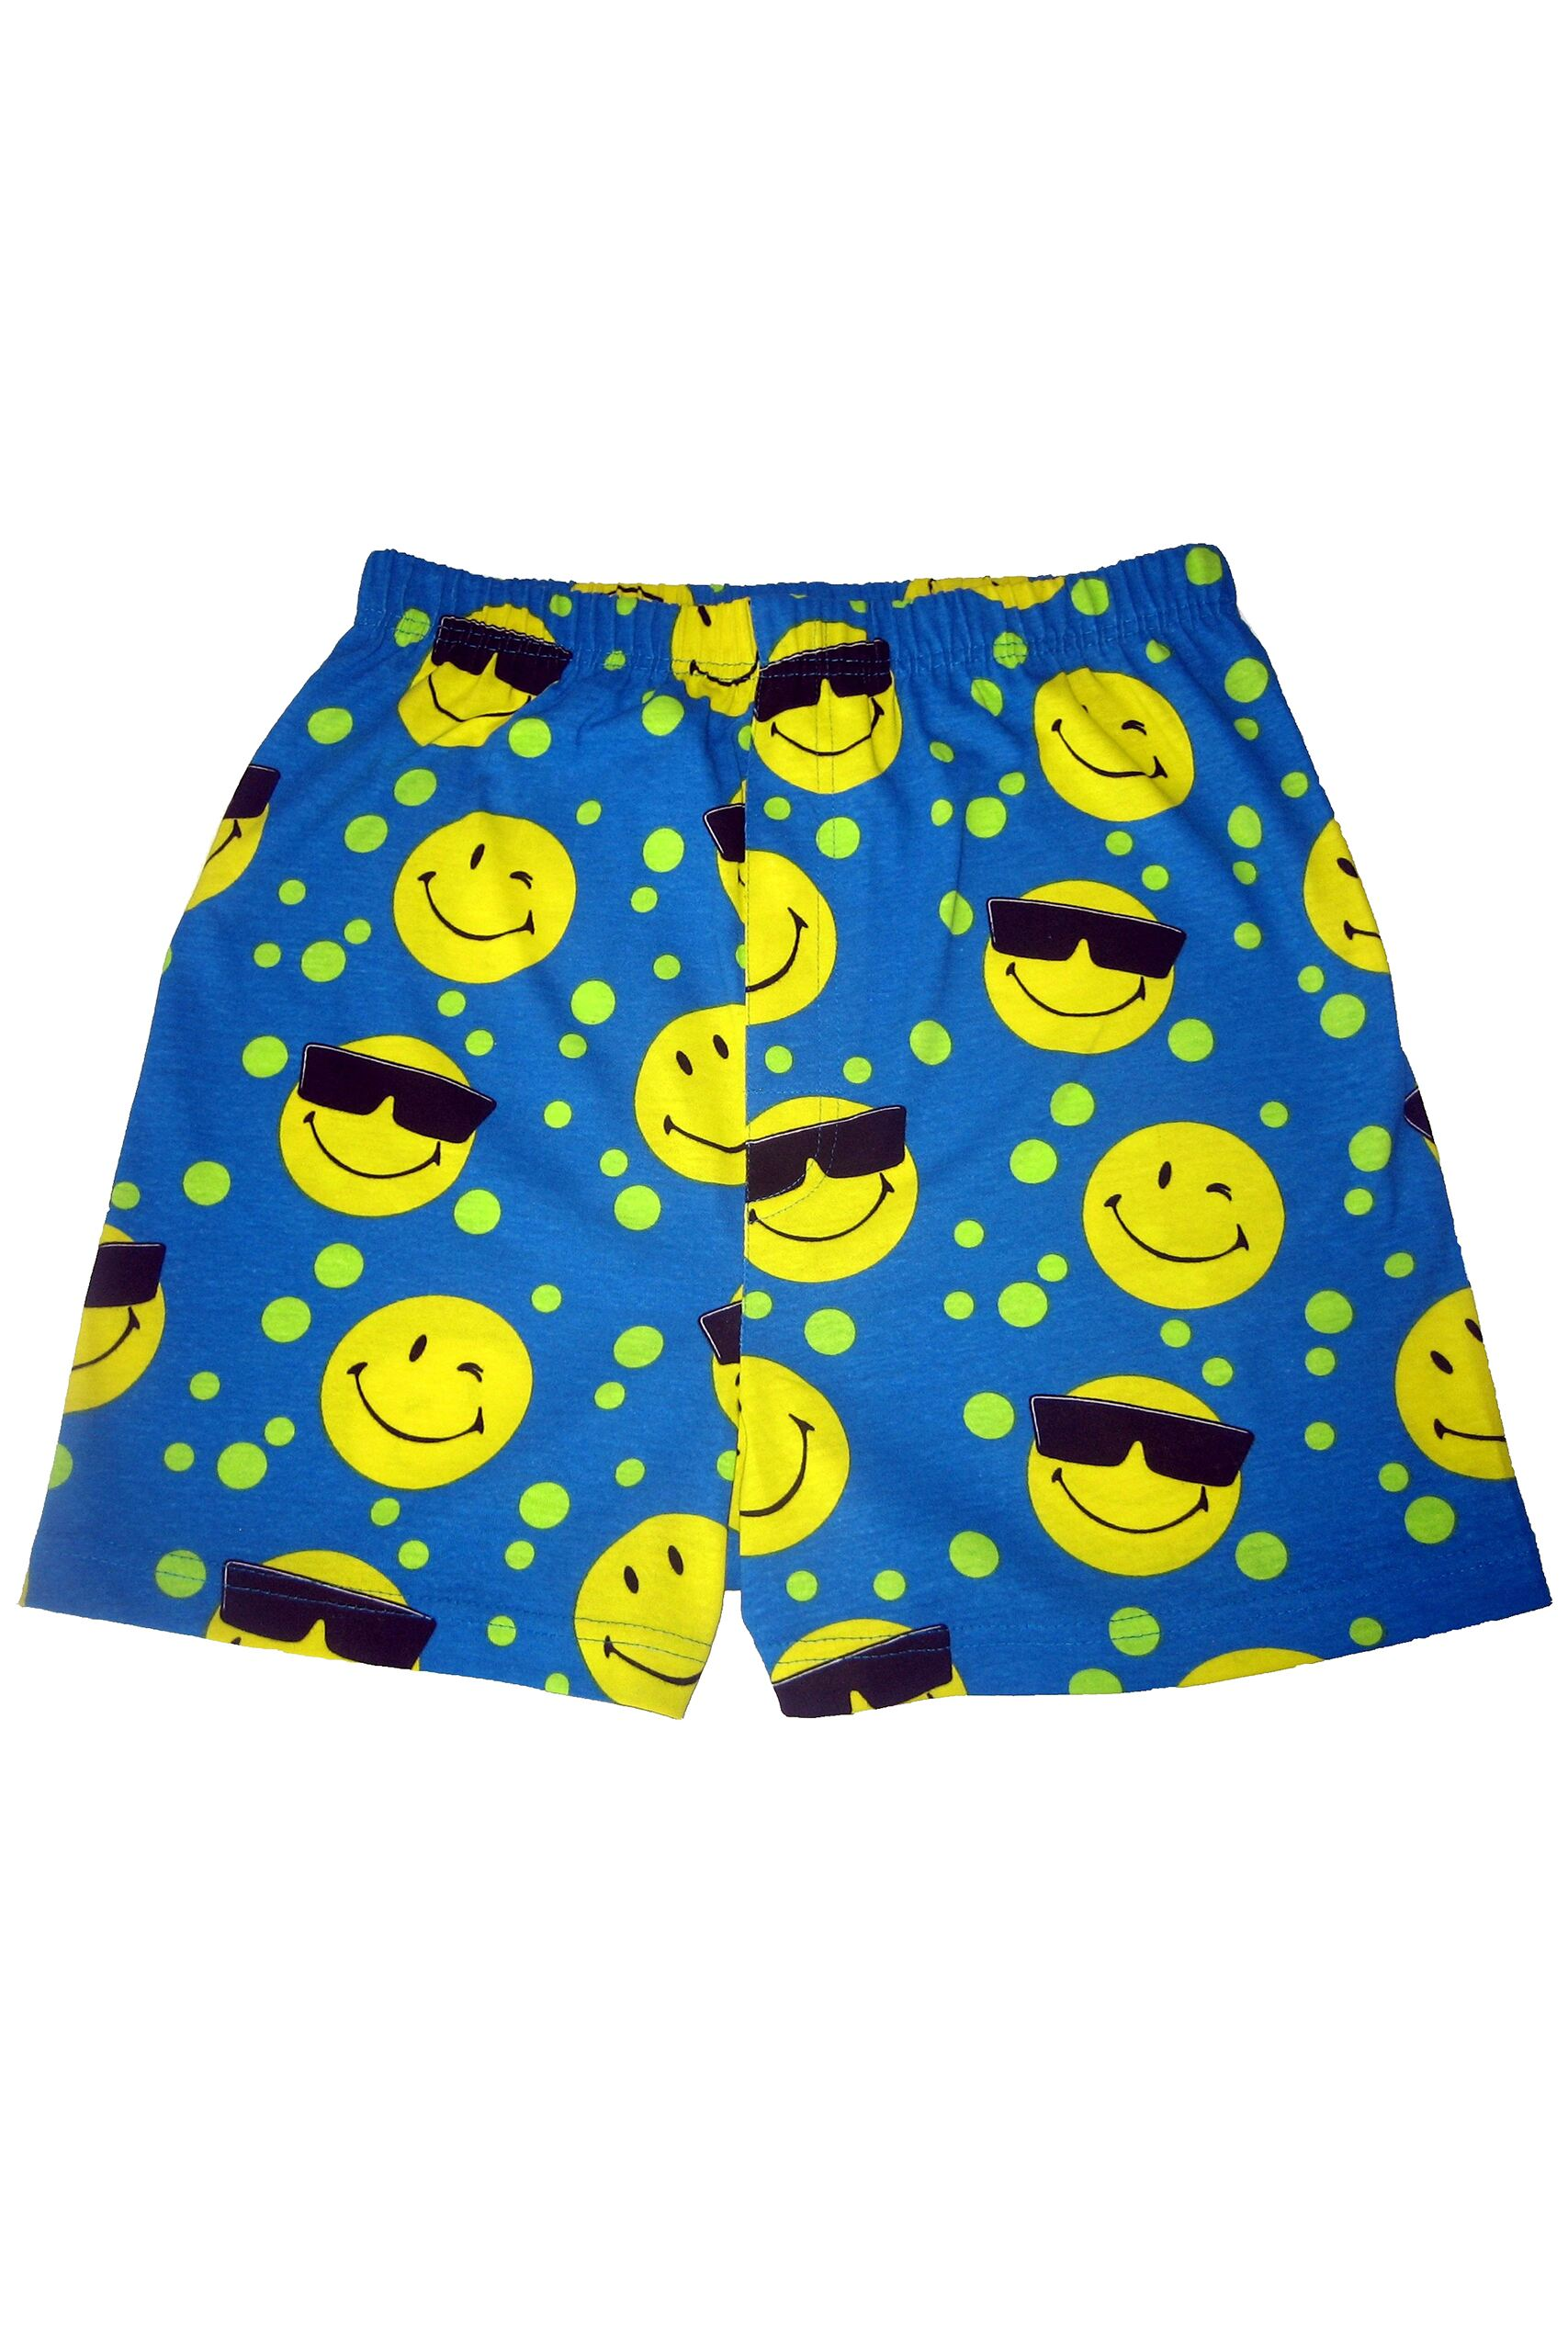 Image of 1 Pack Blue Magic Boxer Shorts In Smiley Pattern Men's Extra Large - SOCKSHOP